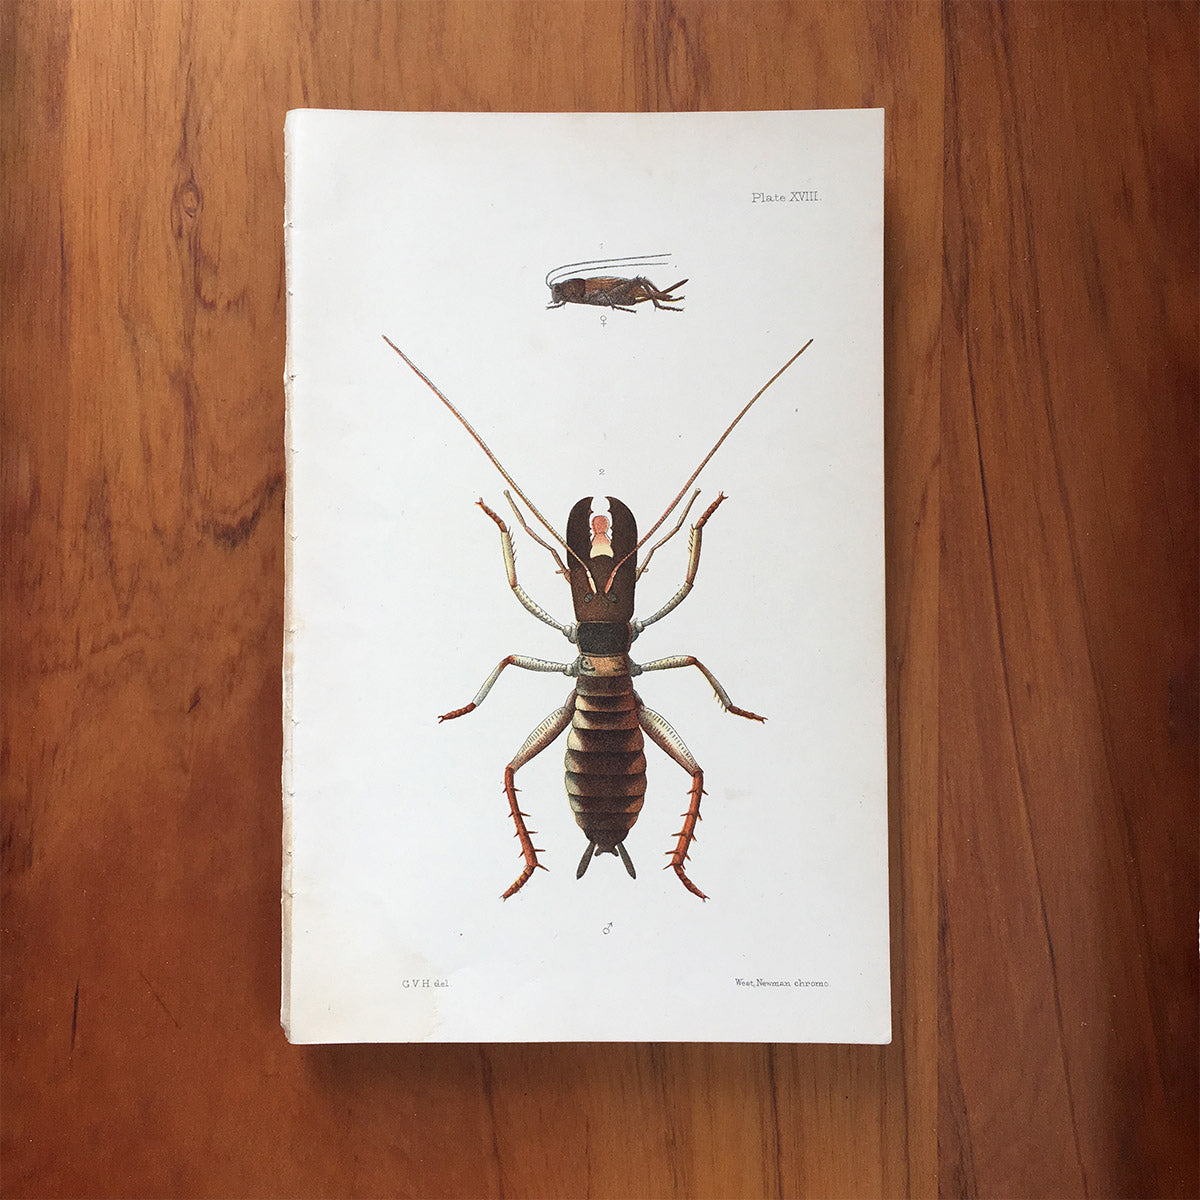 New Zealand insects. Plate XVIII. Orthoptera